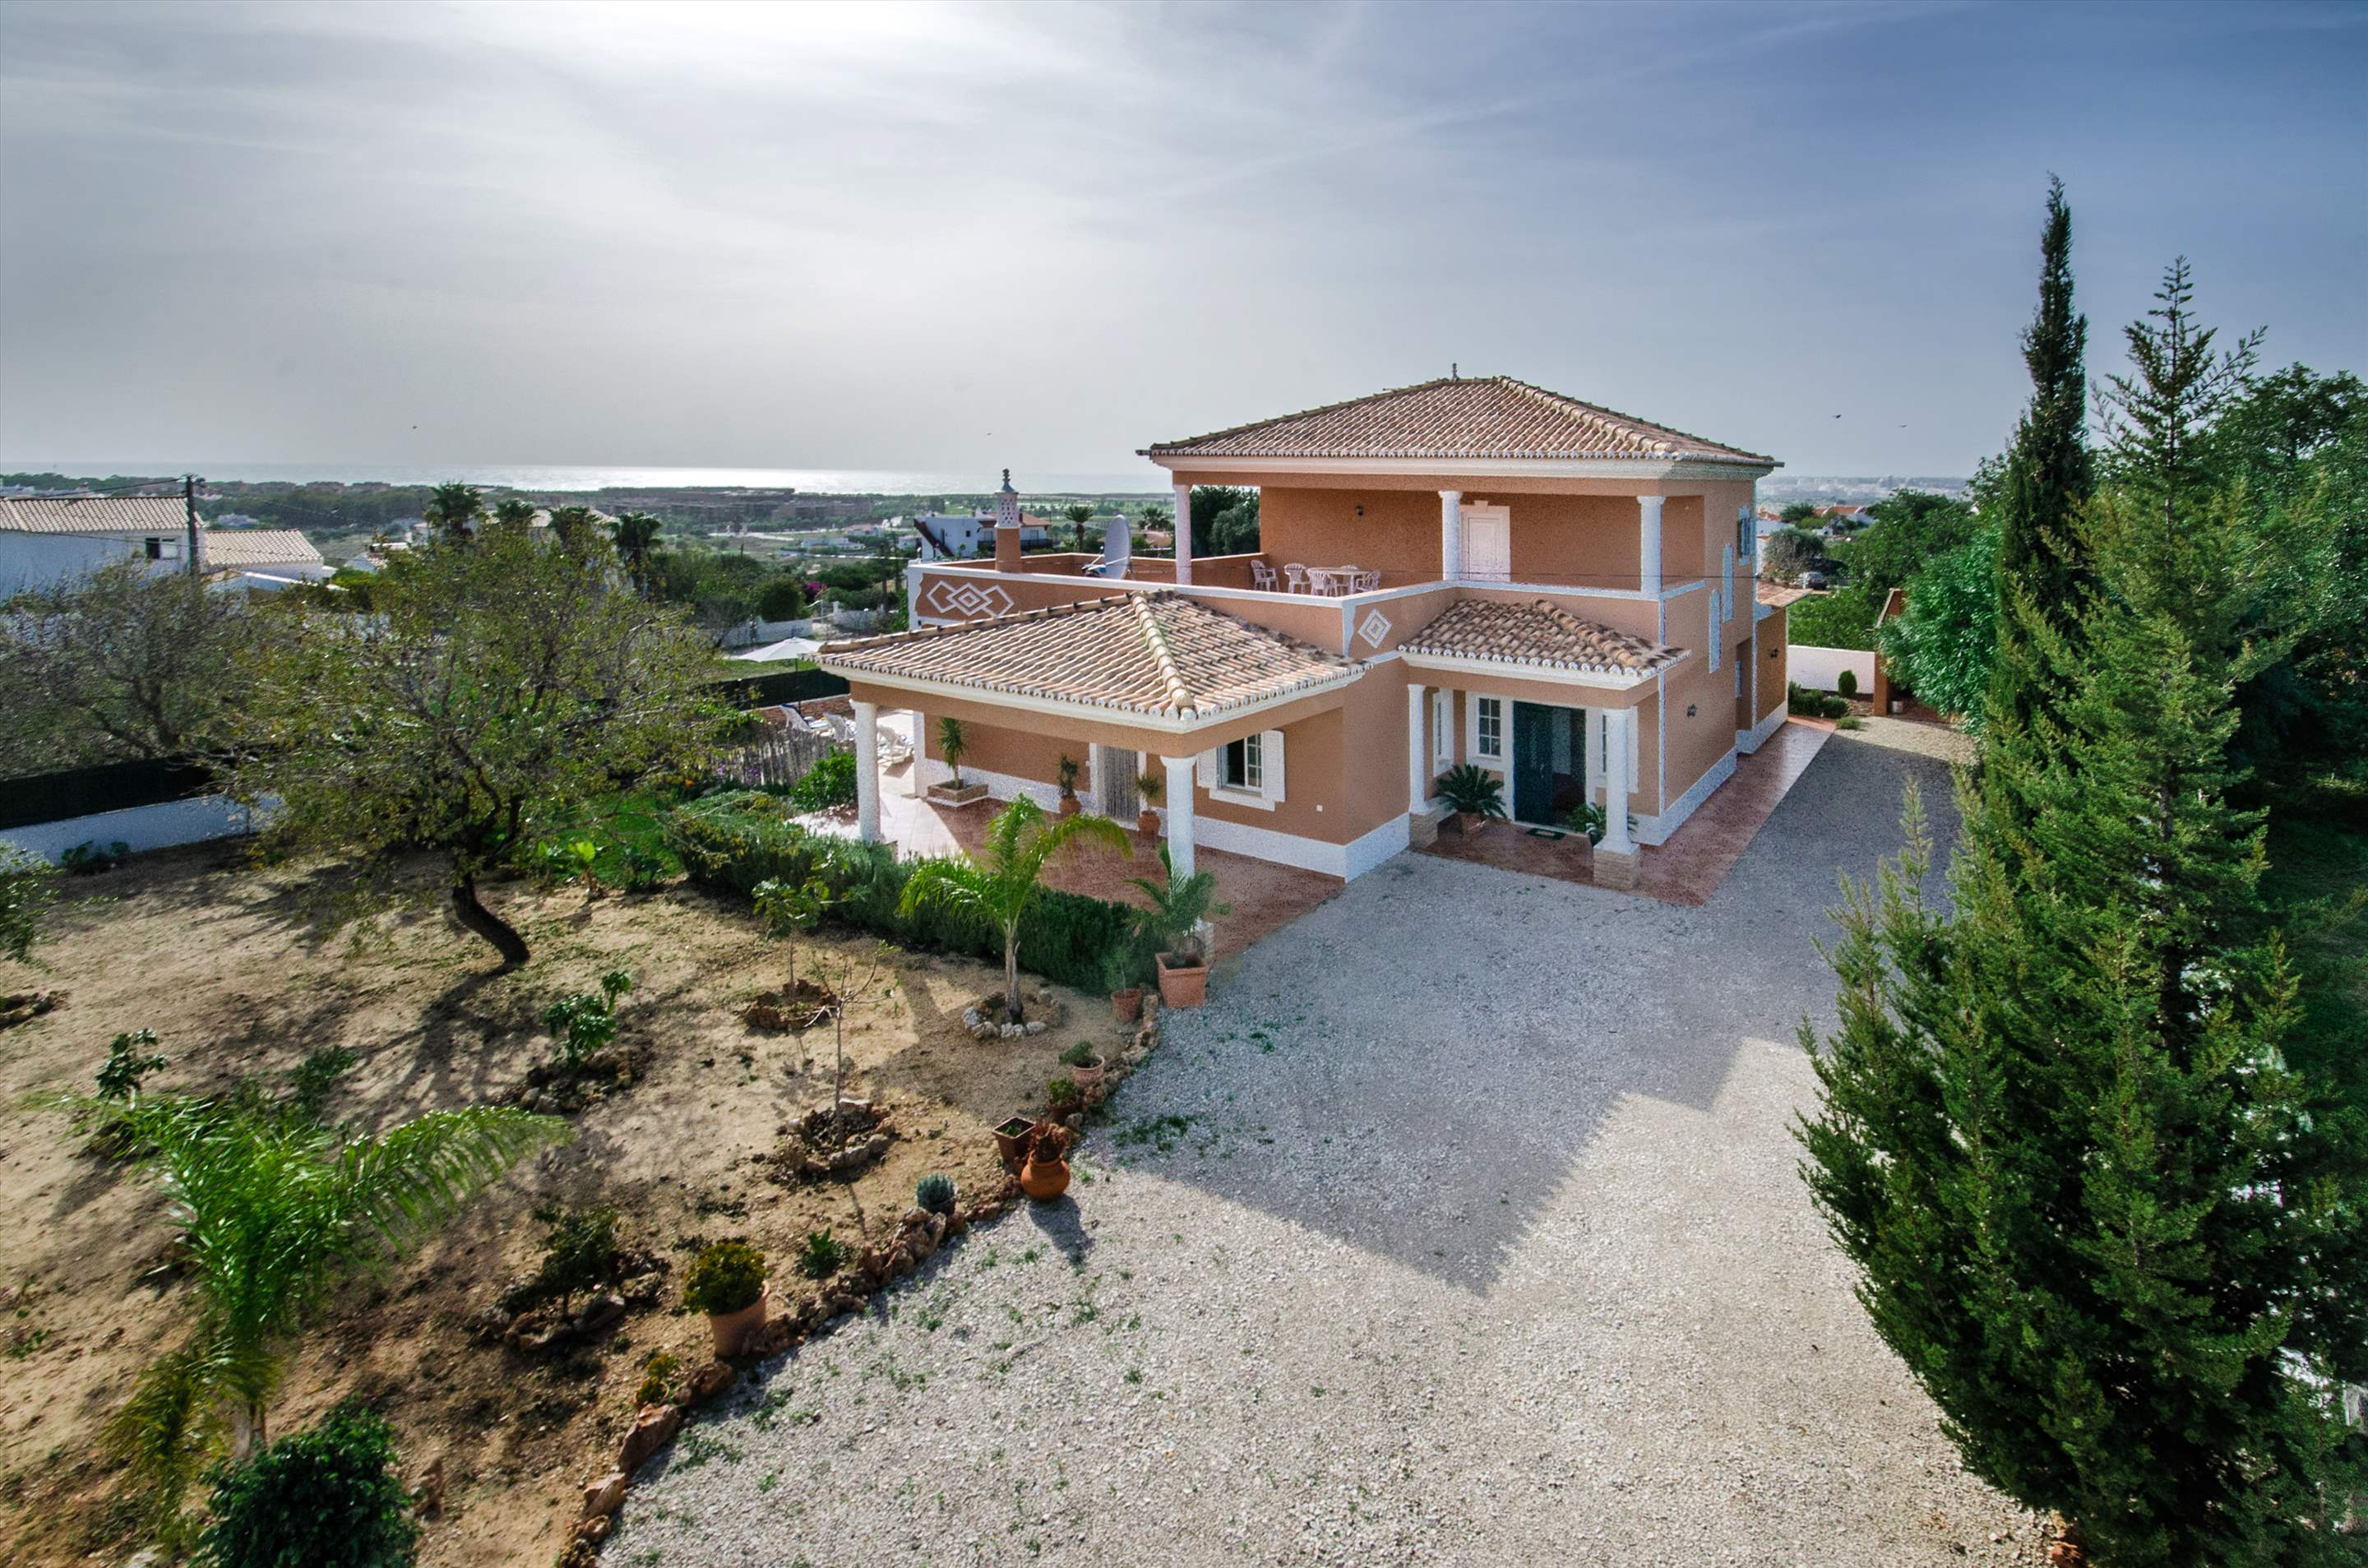 Casa Laura, 3 bedroom villa in Gale, Vale da Parra and Guia, Algarve Photo #30